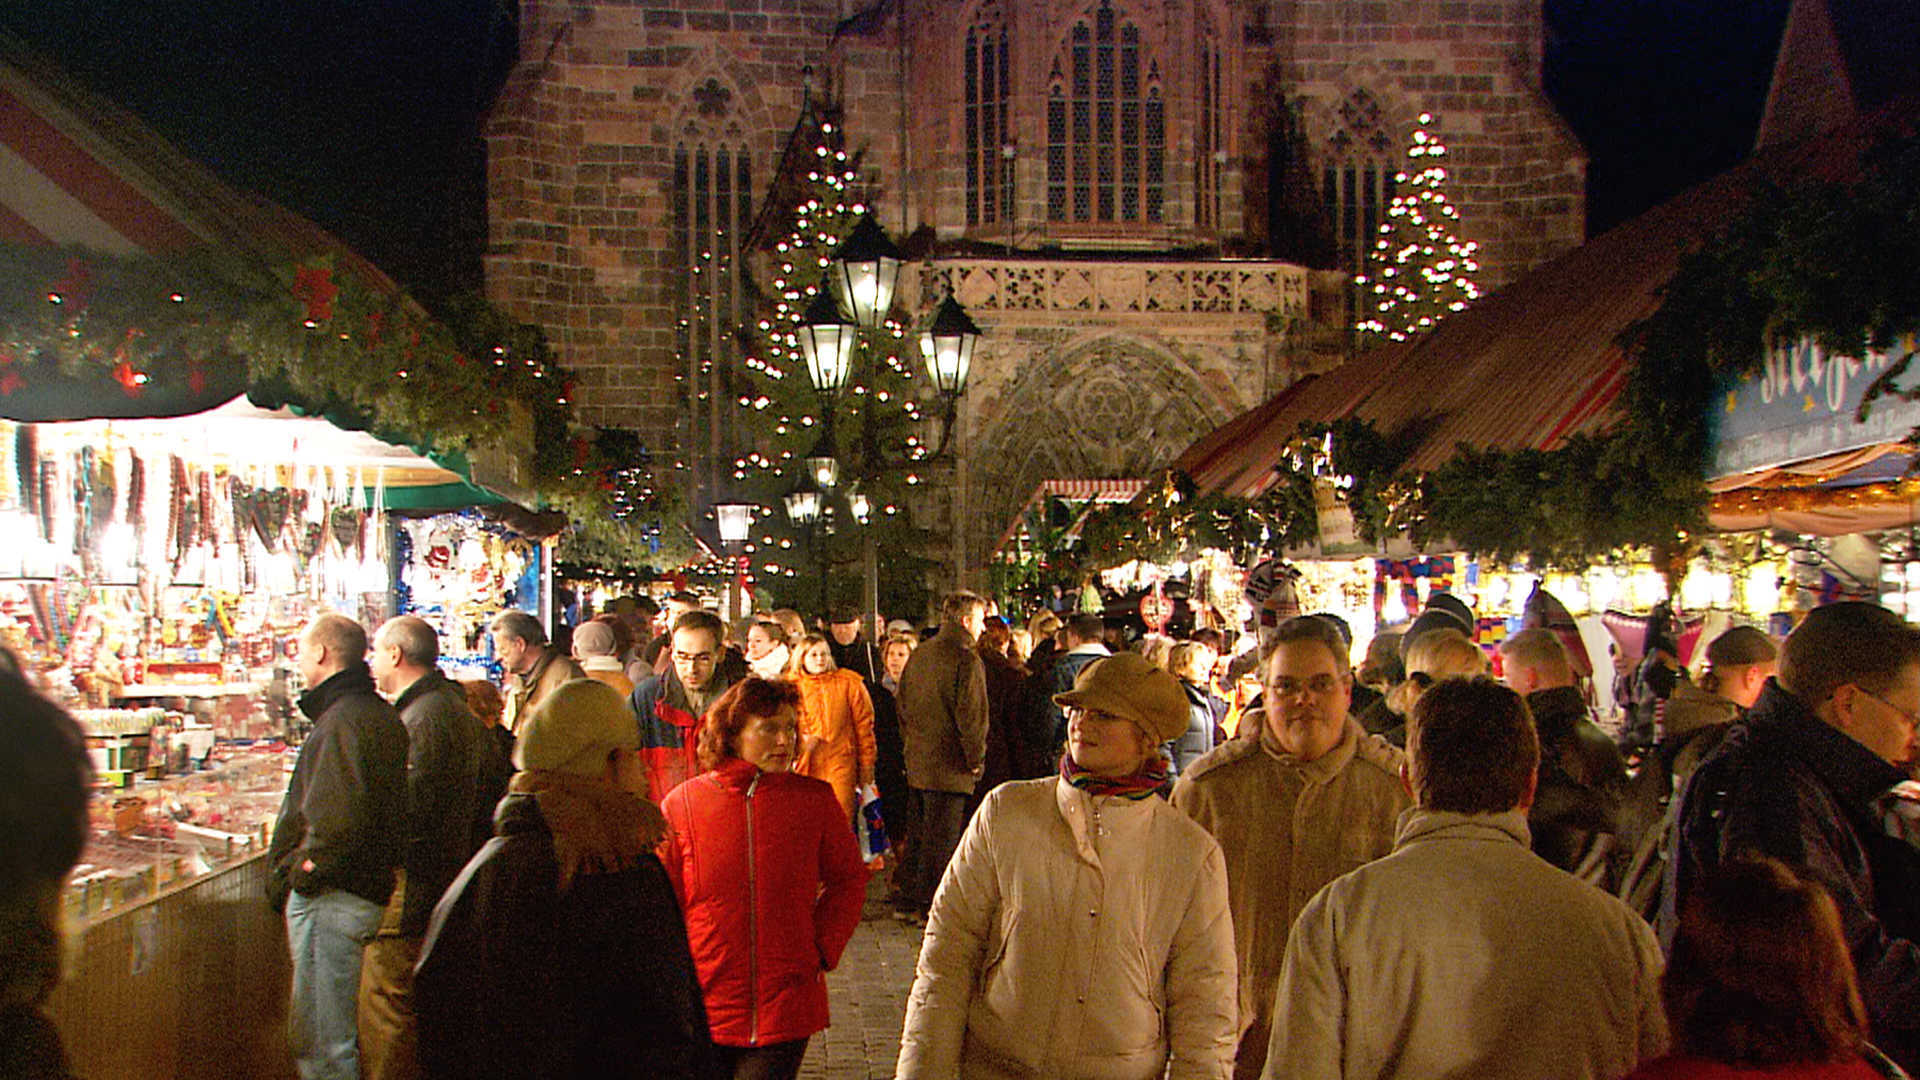 Christmas market in Nurnberg